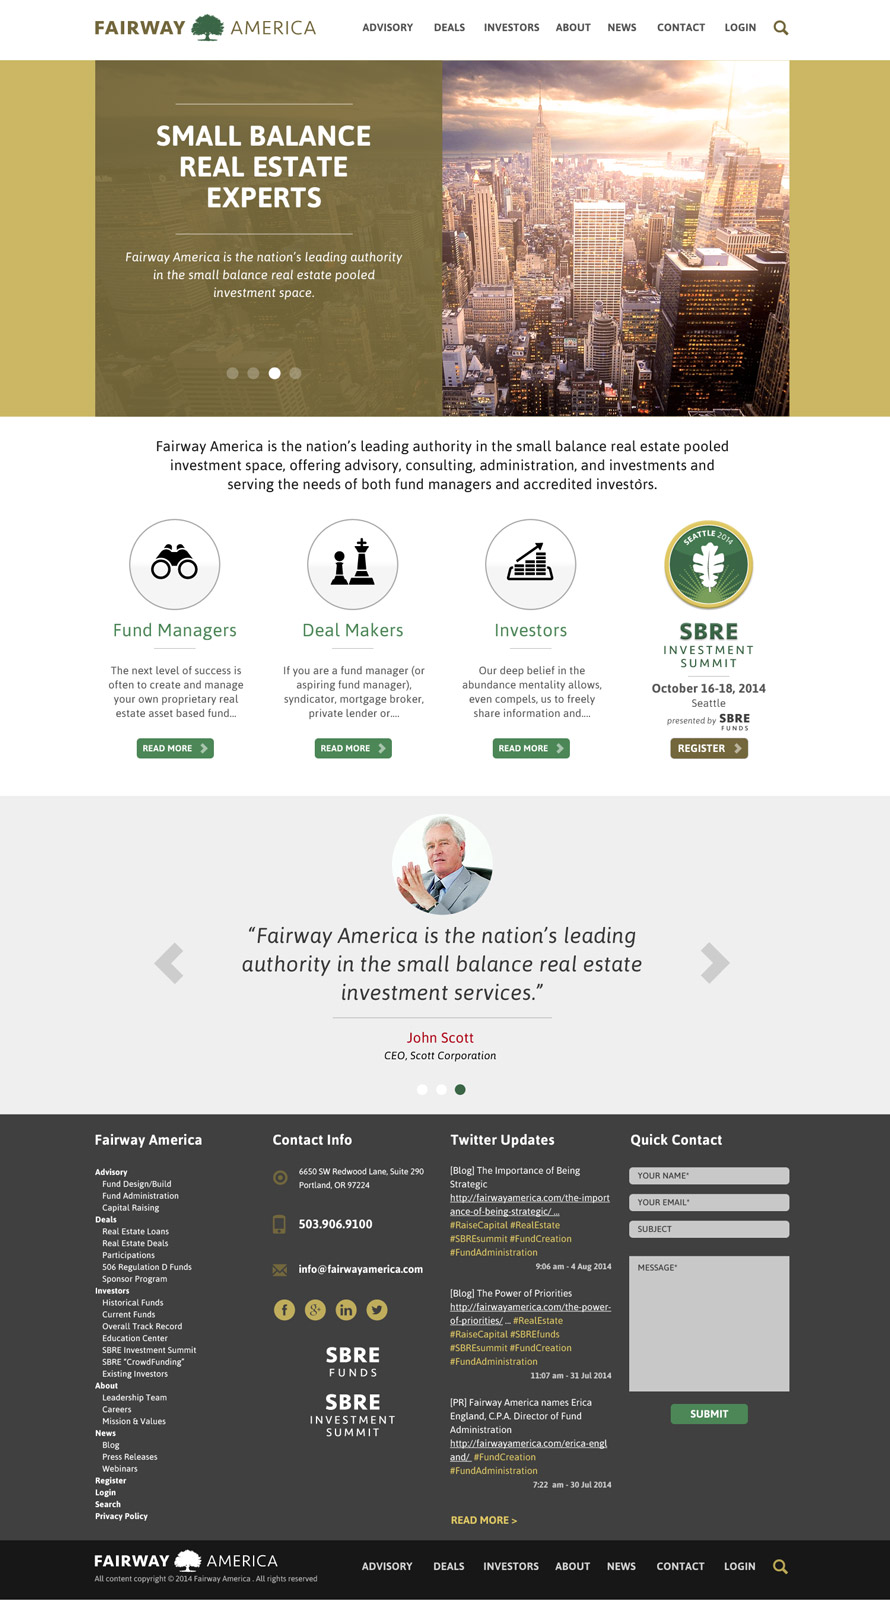 Cosmonaut - Fairway America Web Design